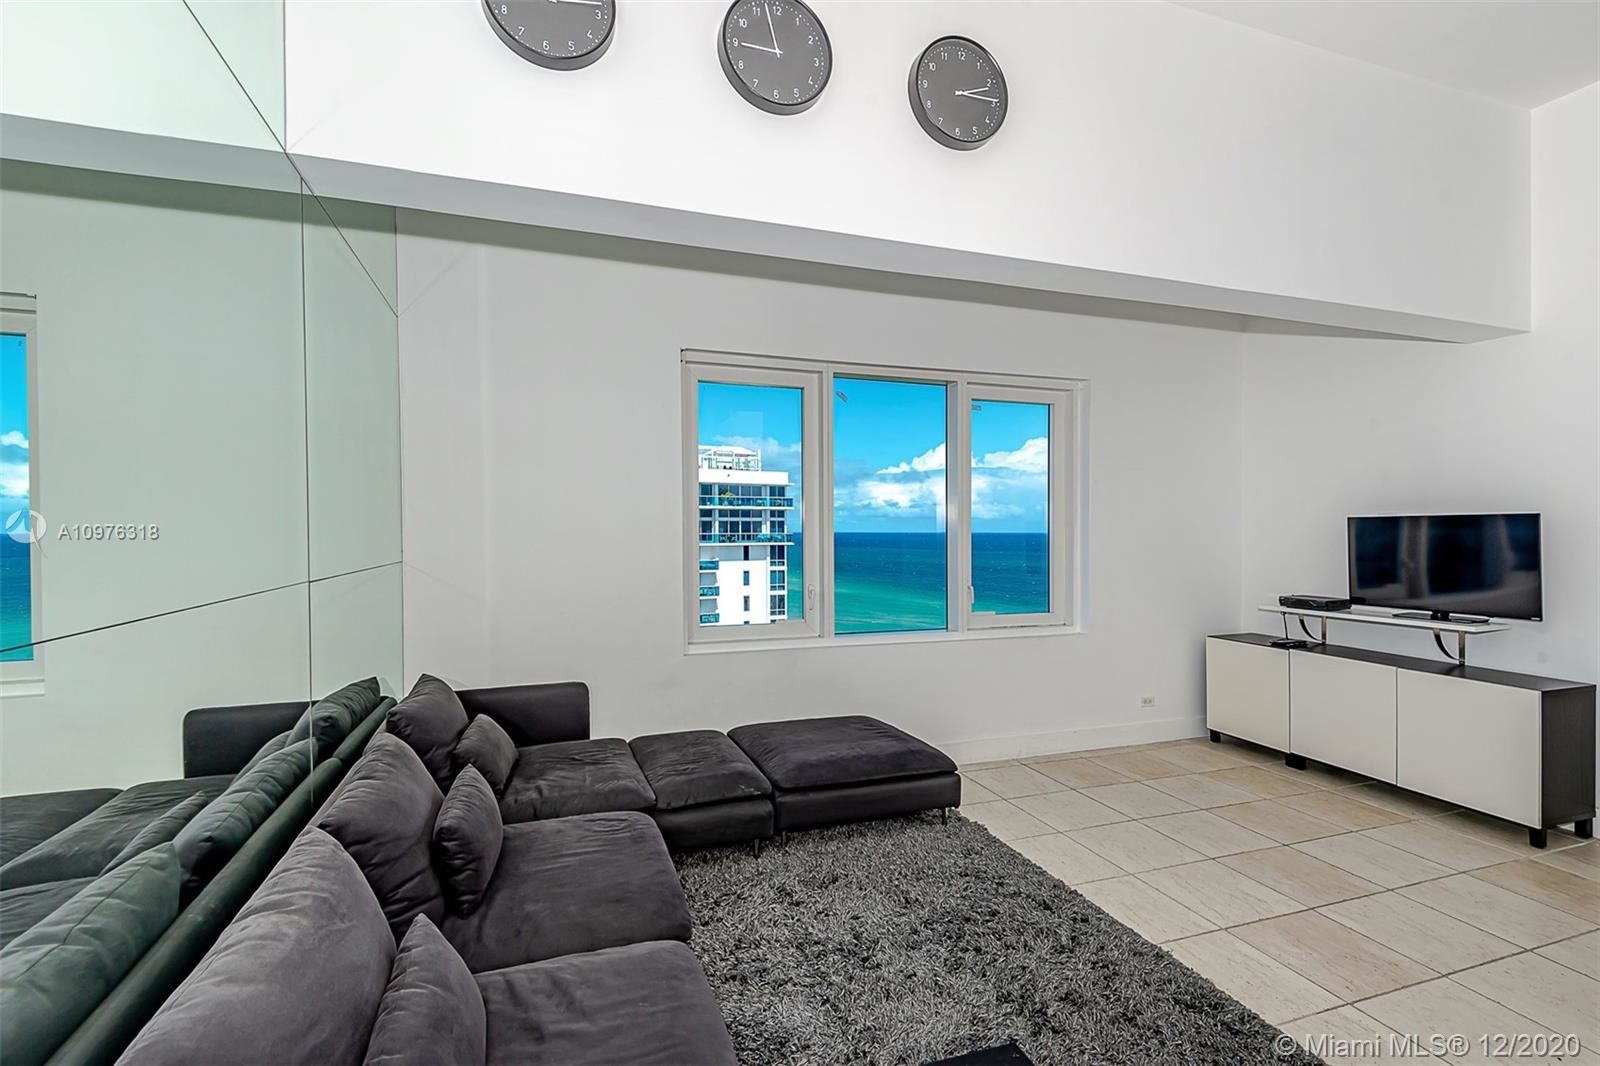 2301 Collins Ave #1614, Miami Beach, FL 33139 - #: A10976318